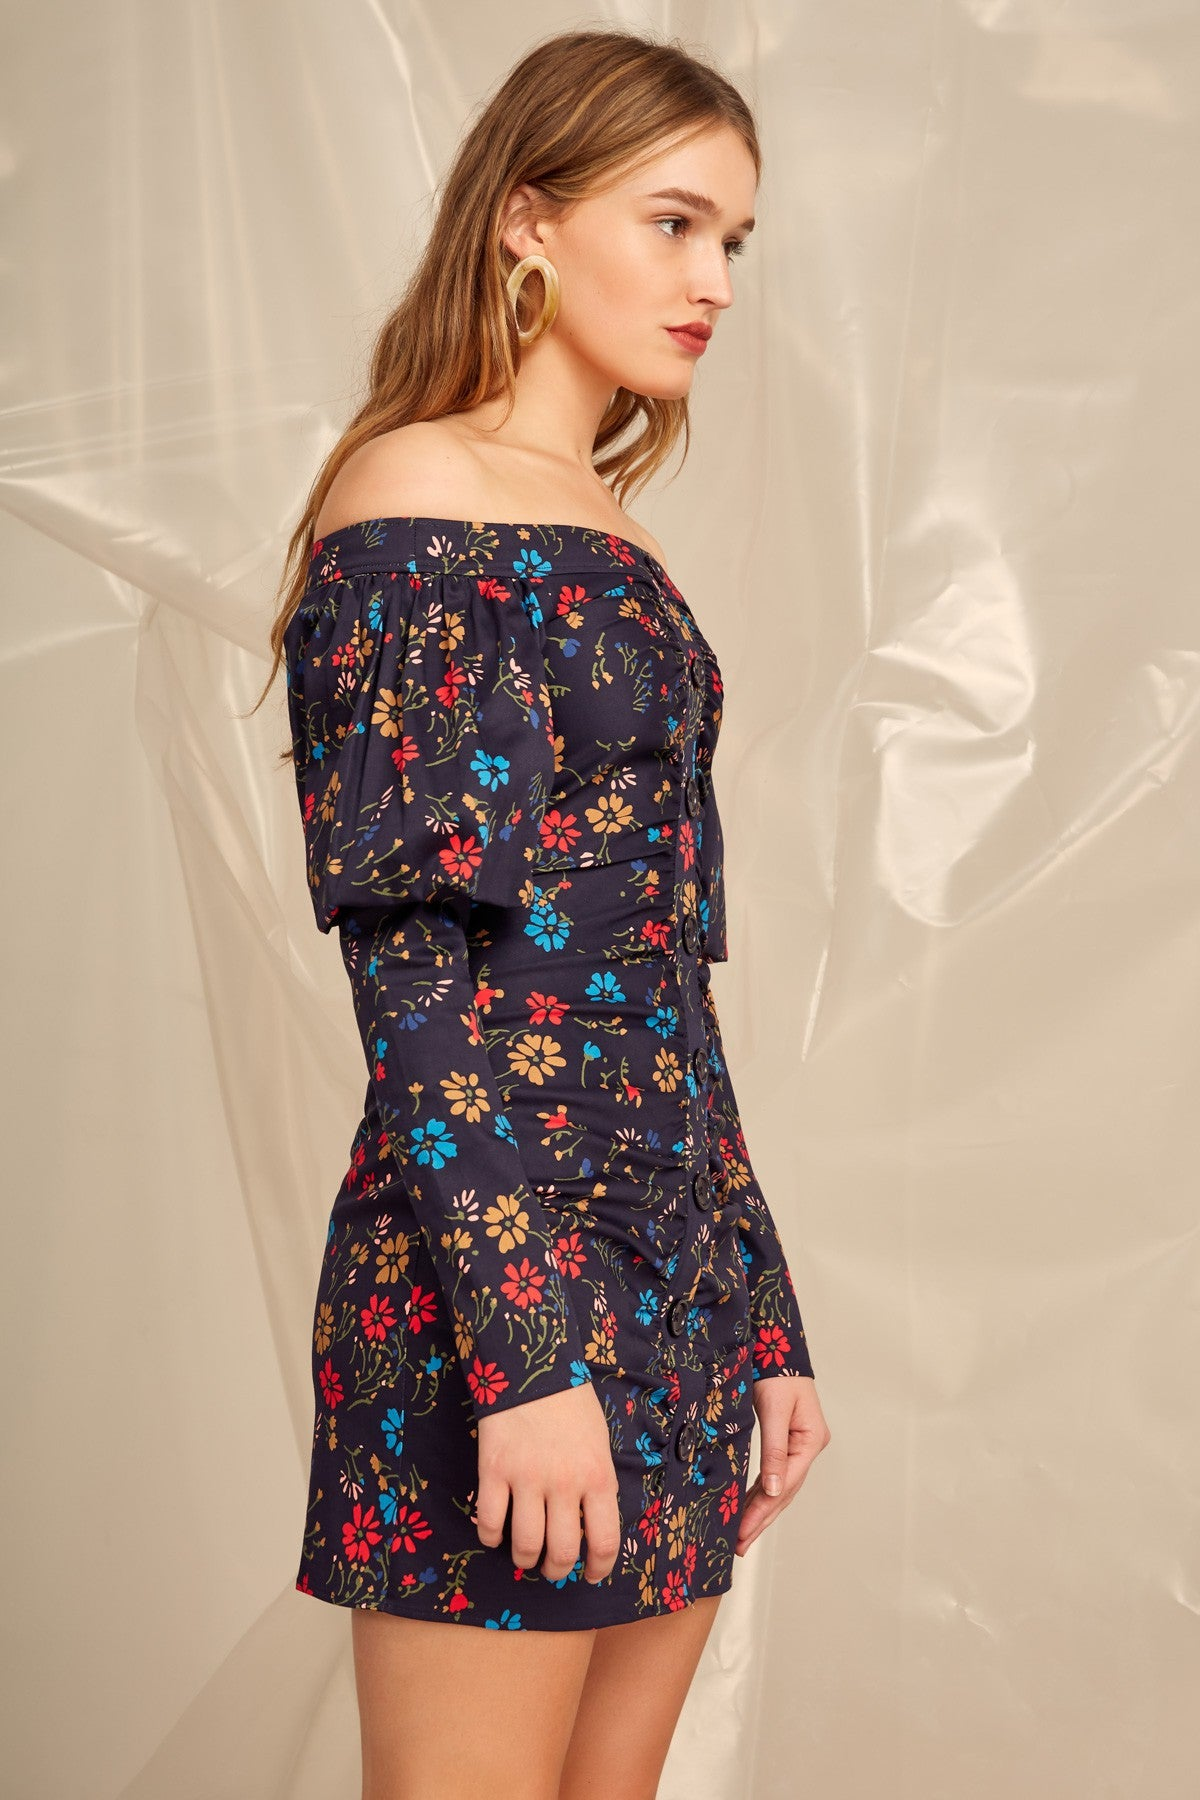 ACCOLADE LONG SLEEVE DRESS navy floral